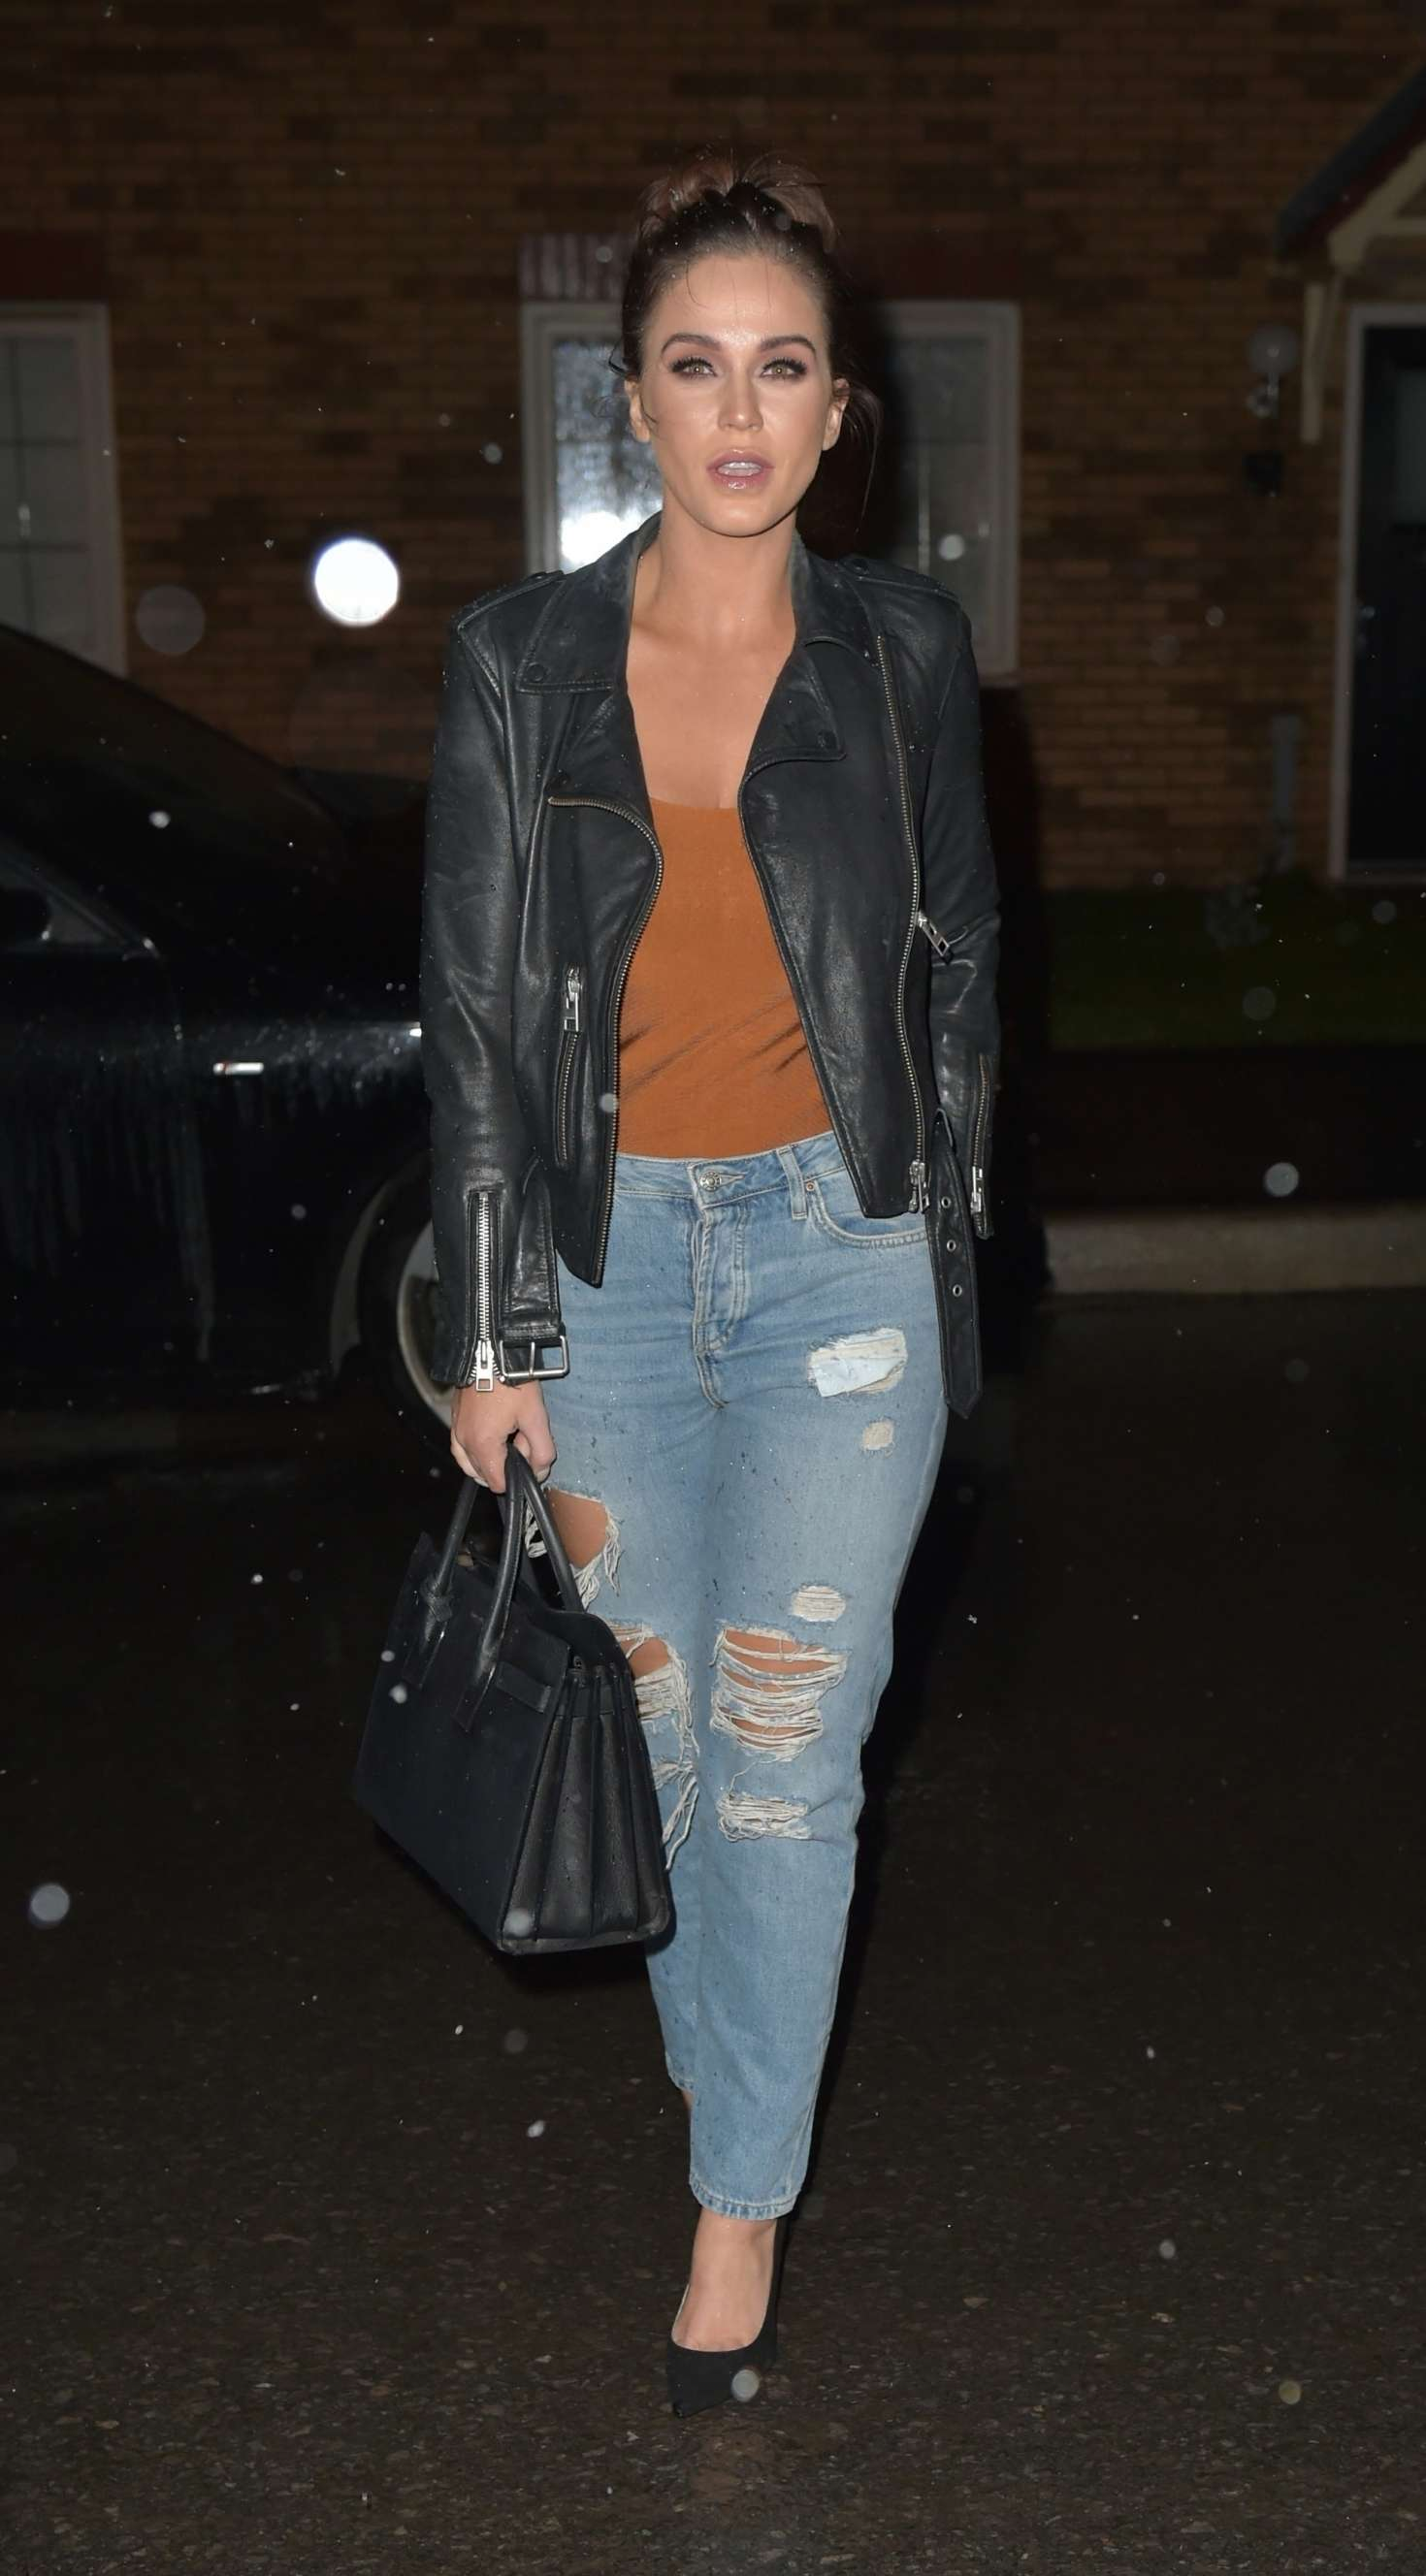 Vicky Pattison in Ripped Jeans - Out in Newcastle